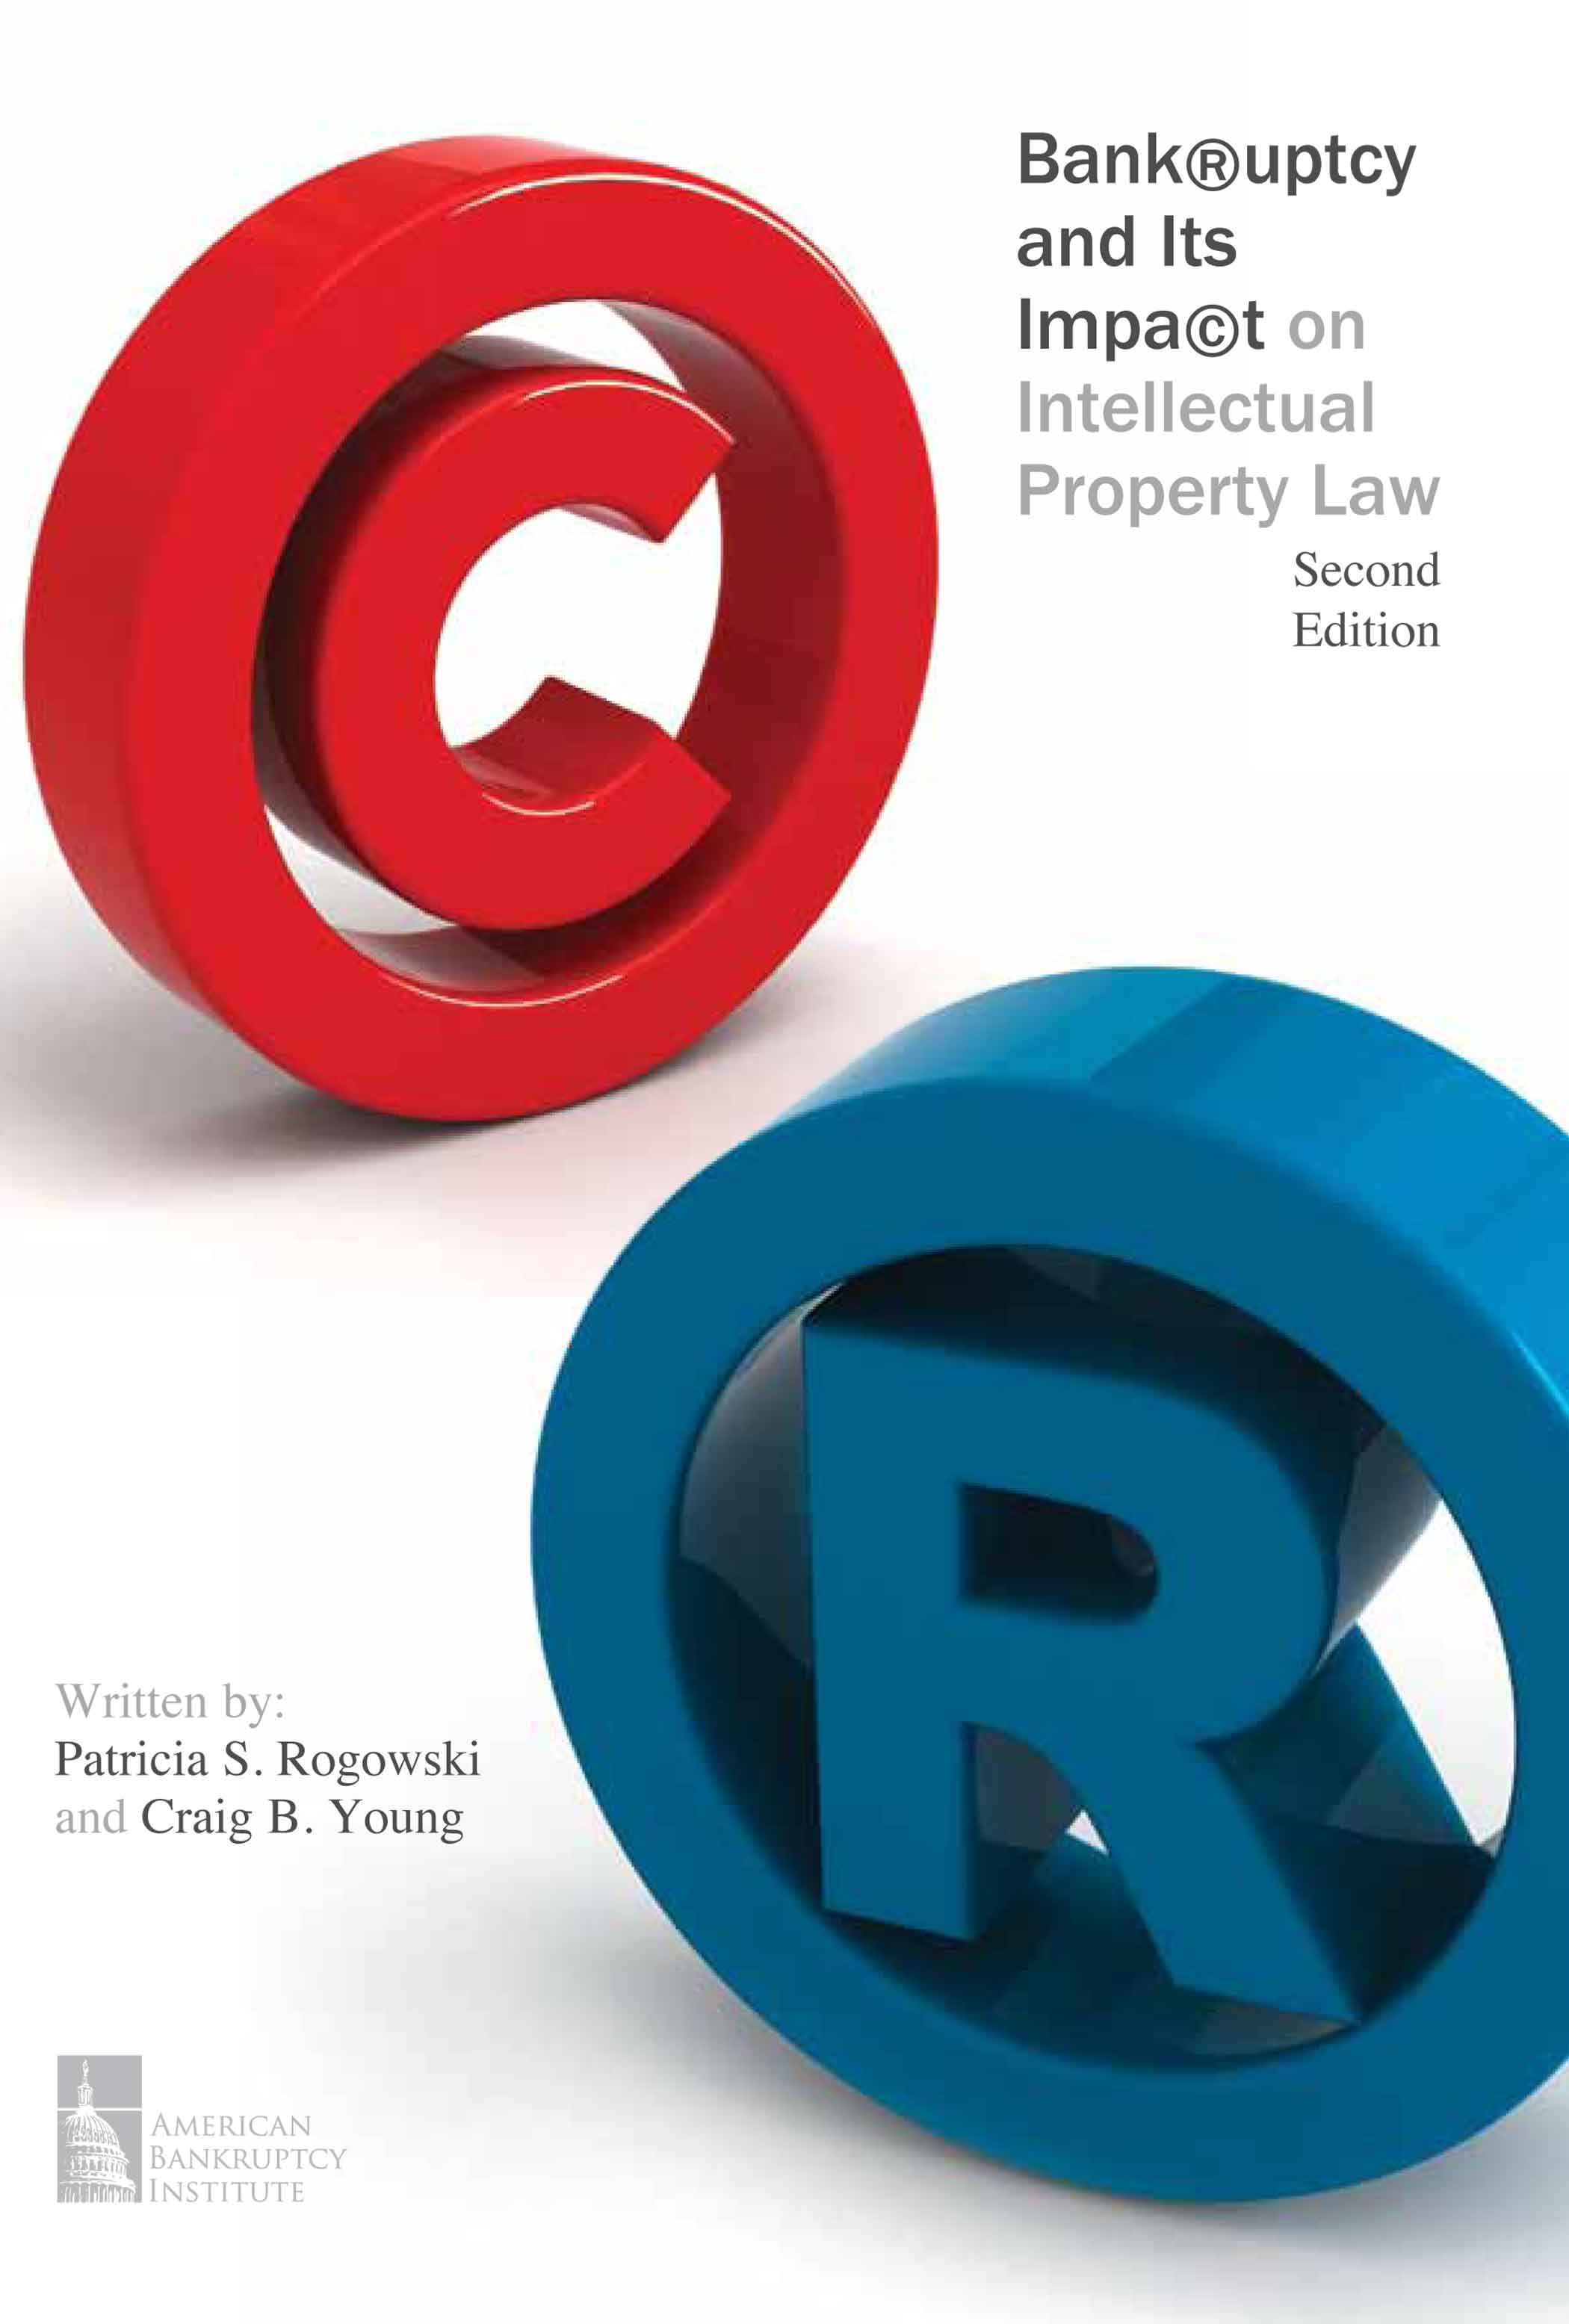 Bankruptcy and Its Impact on Intellectual Property